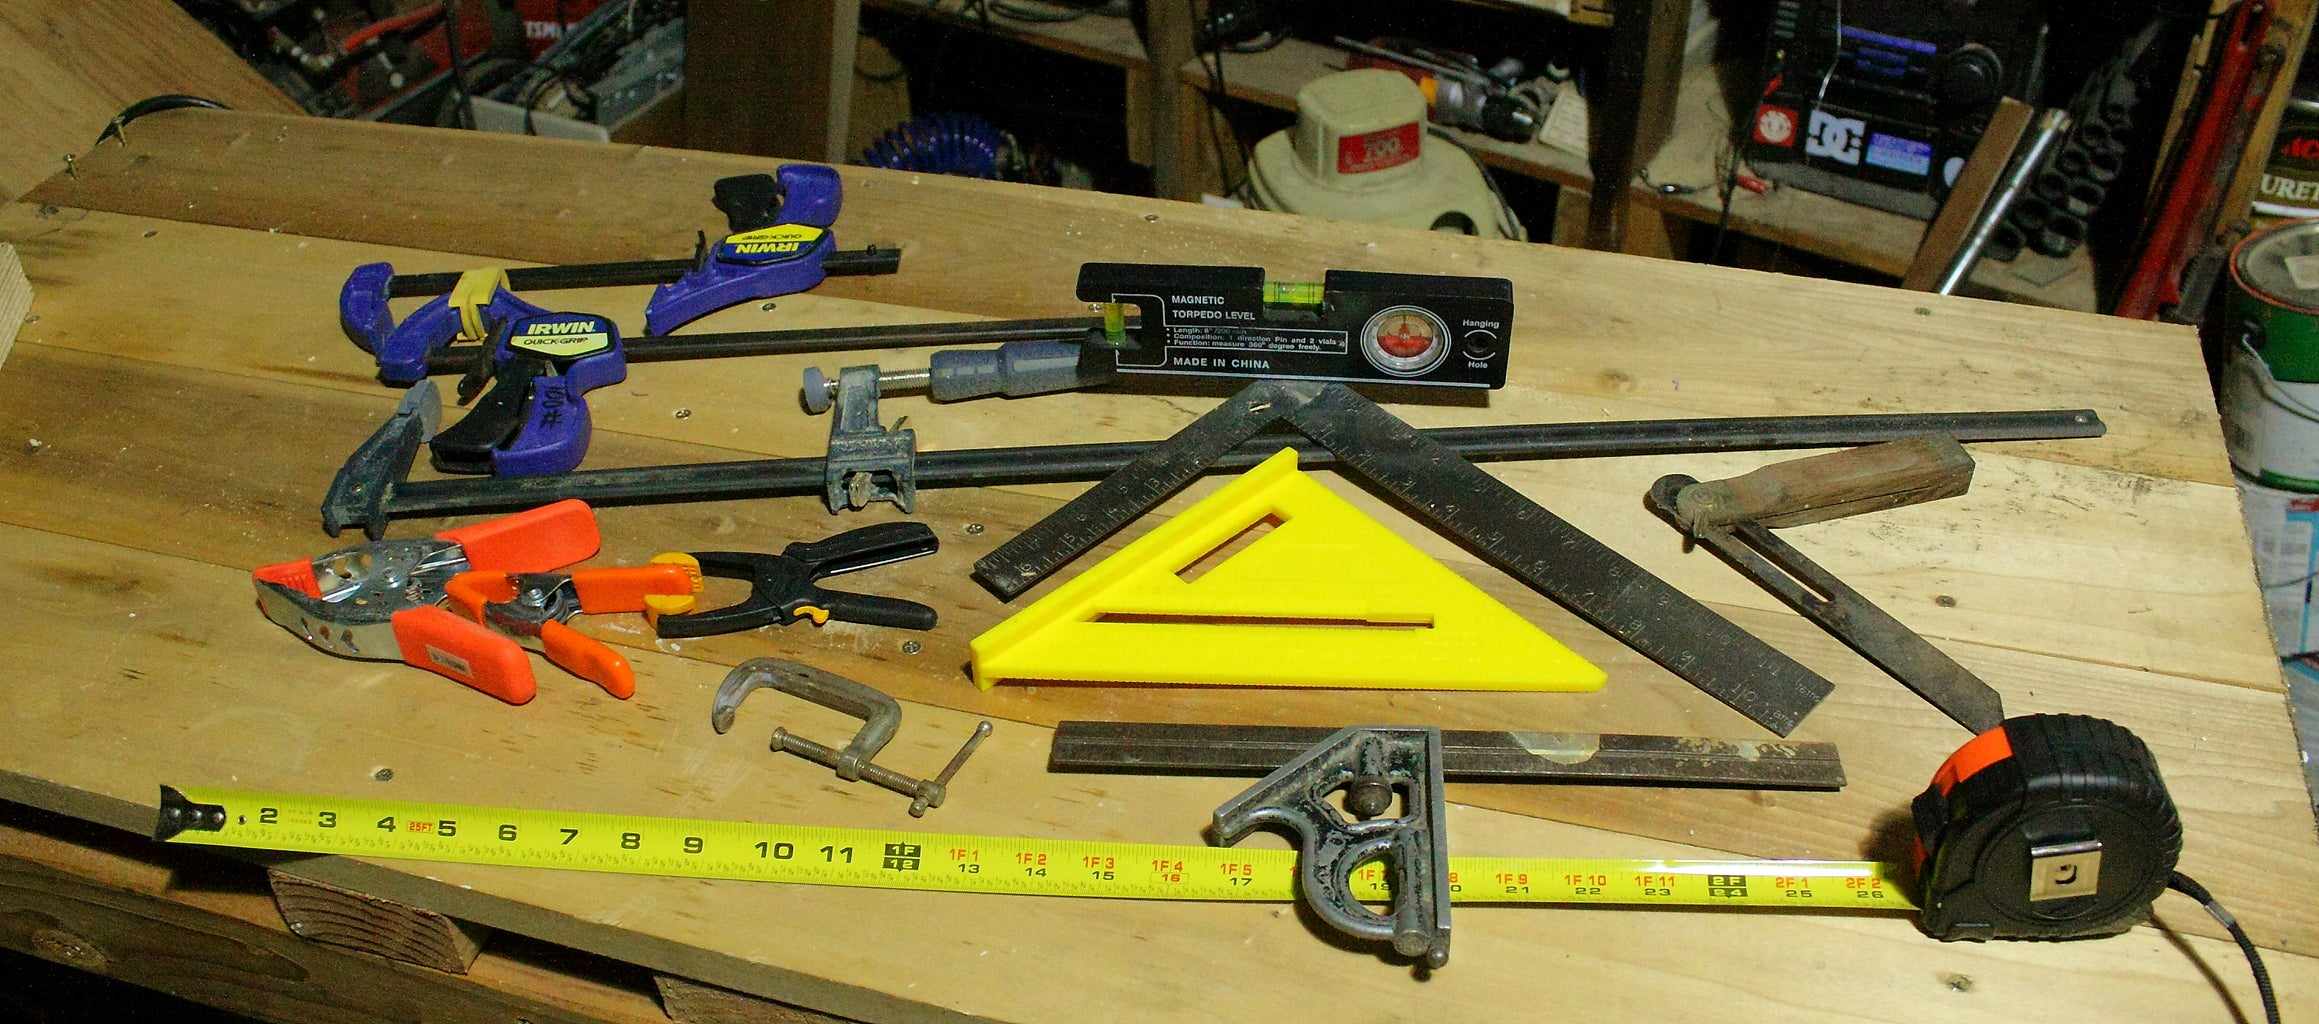 Clamps and Measuring